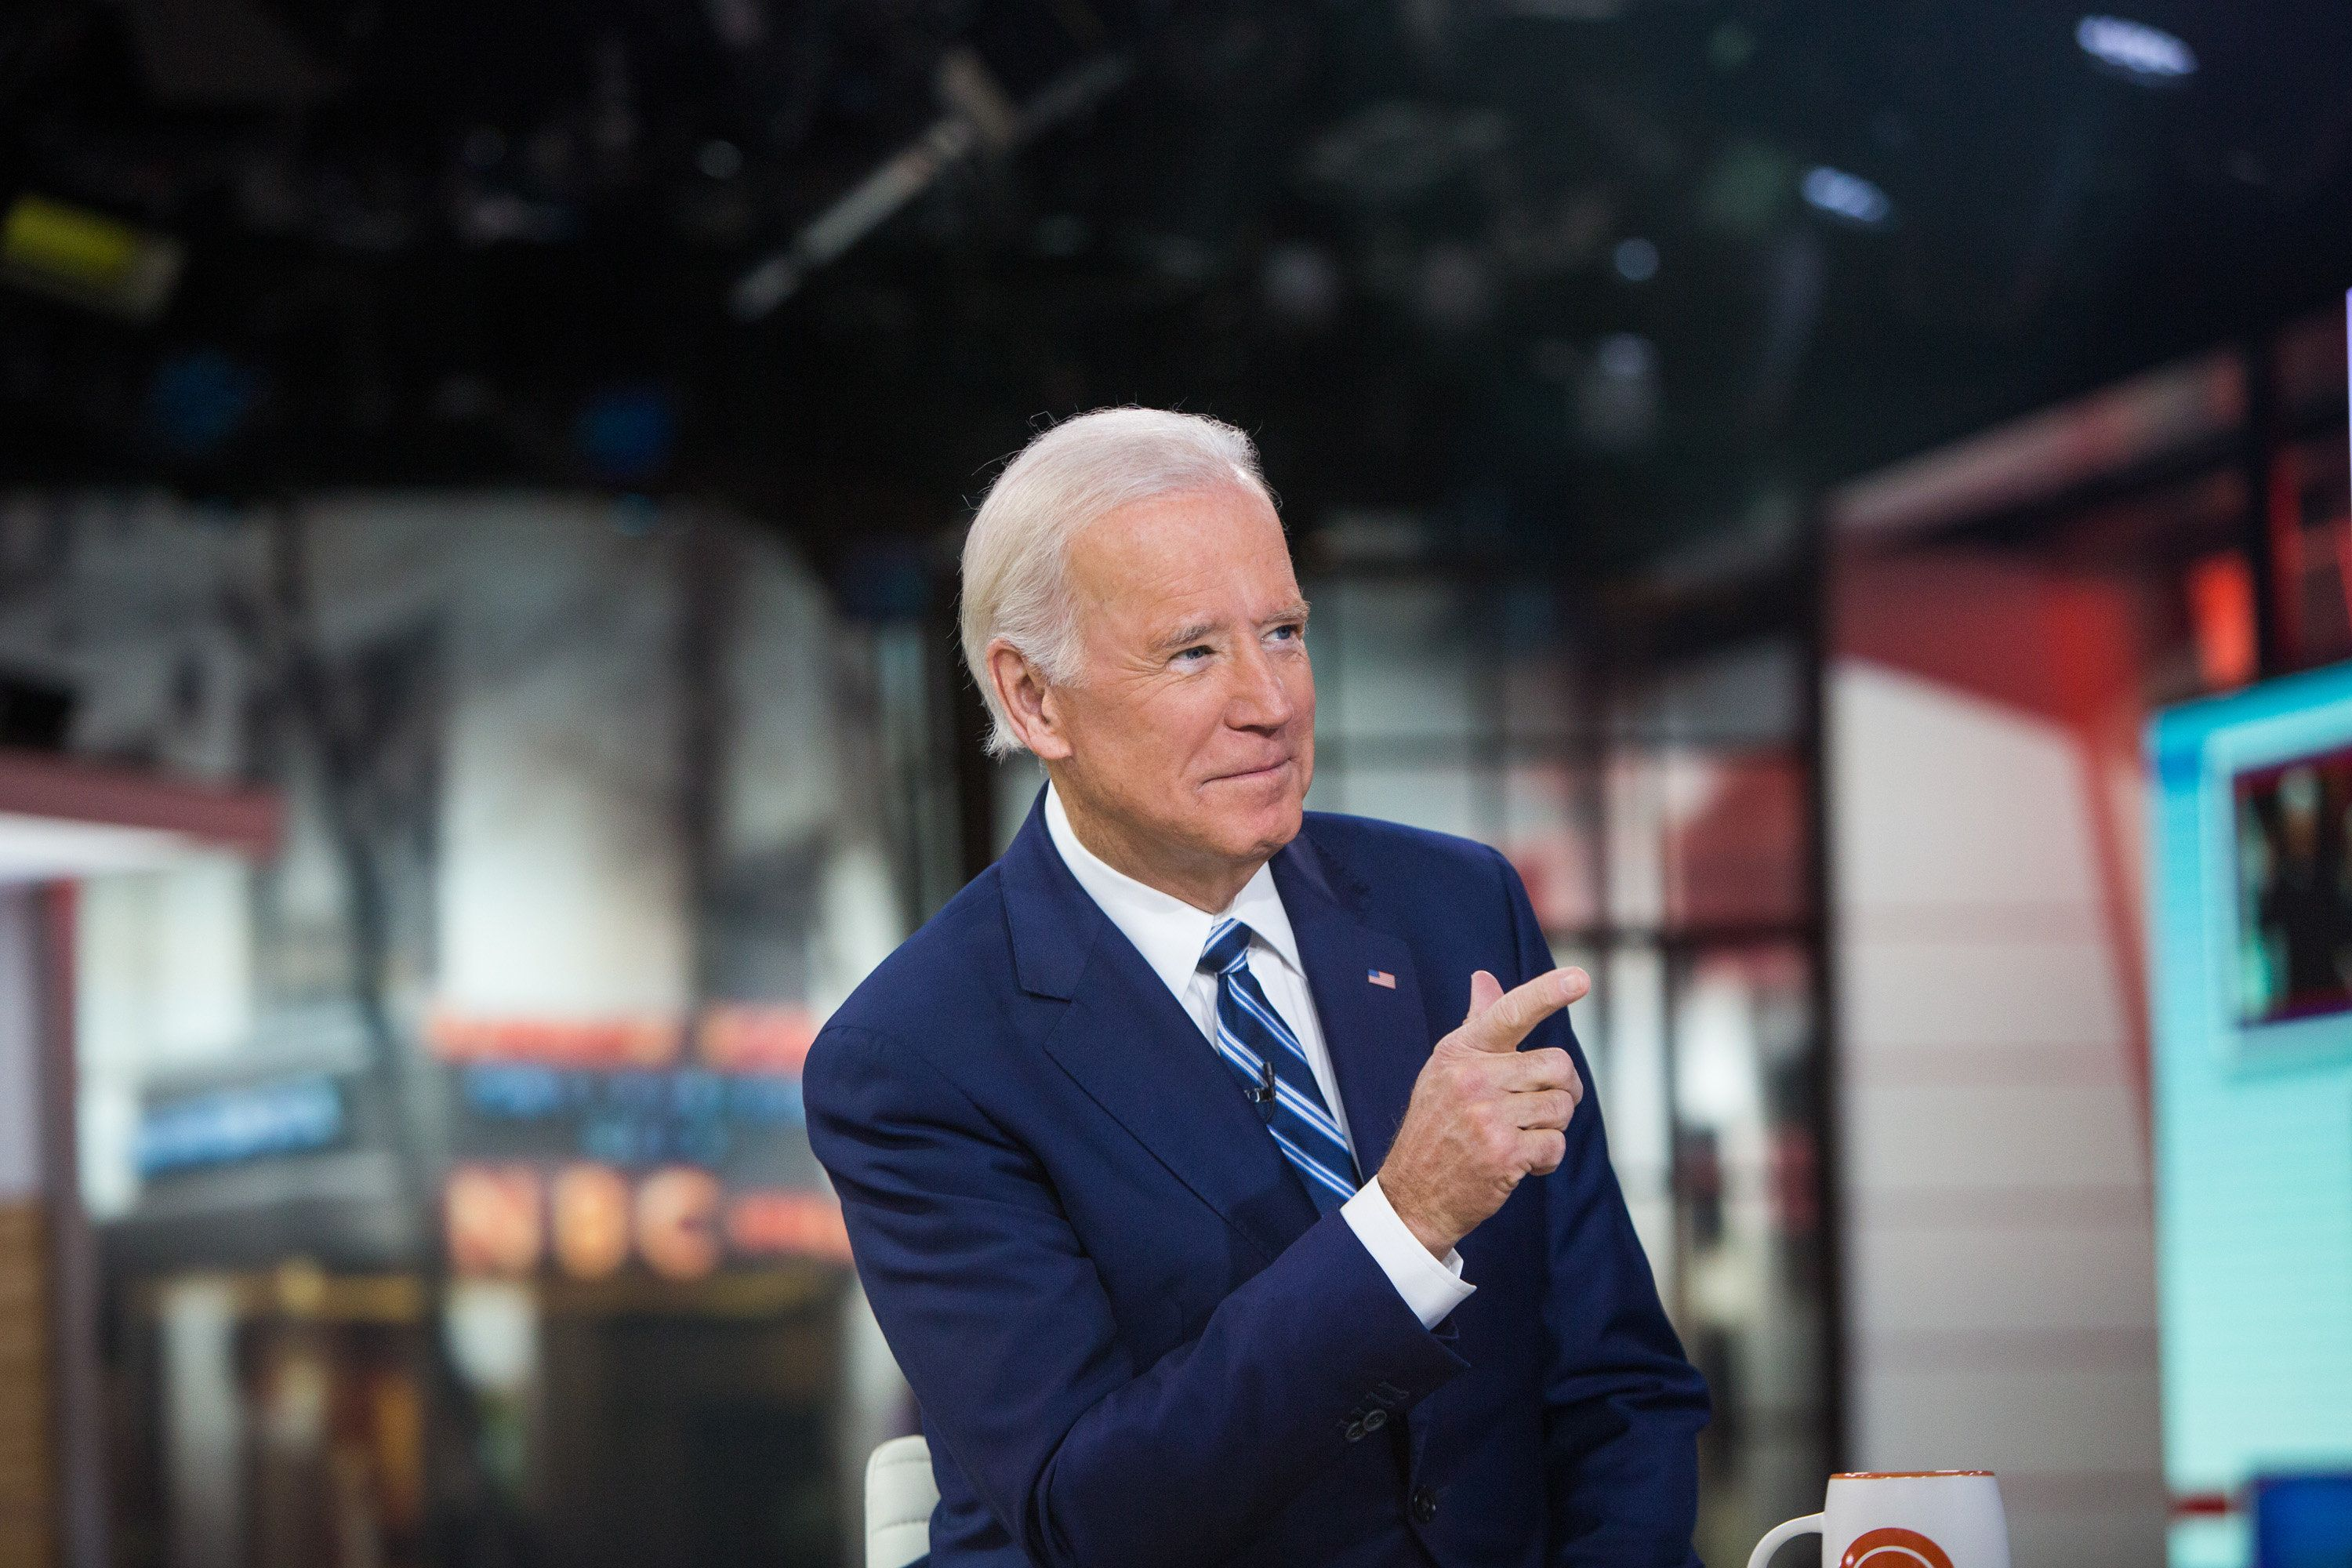 Nathan Congleton  NBC via Getty Images Former Vice President Joe Biden had some Biden-esque words for President Donald Trump